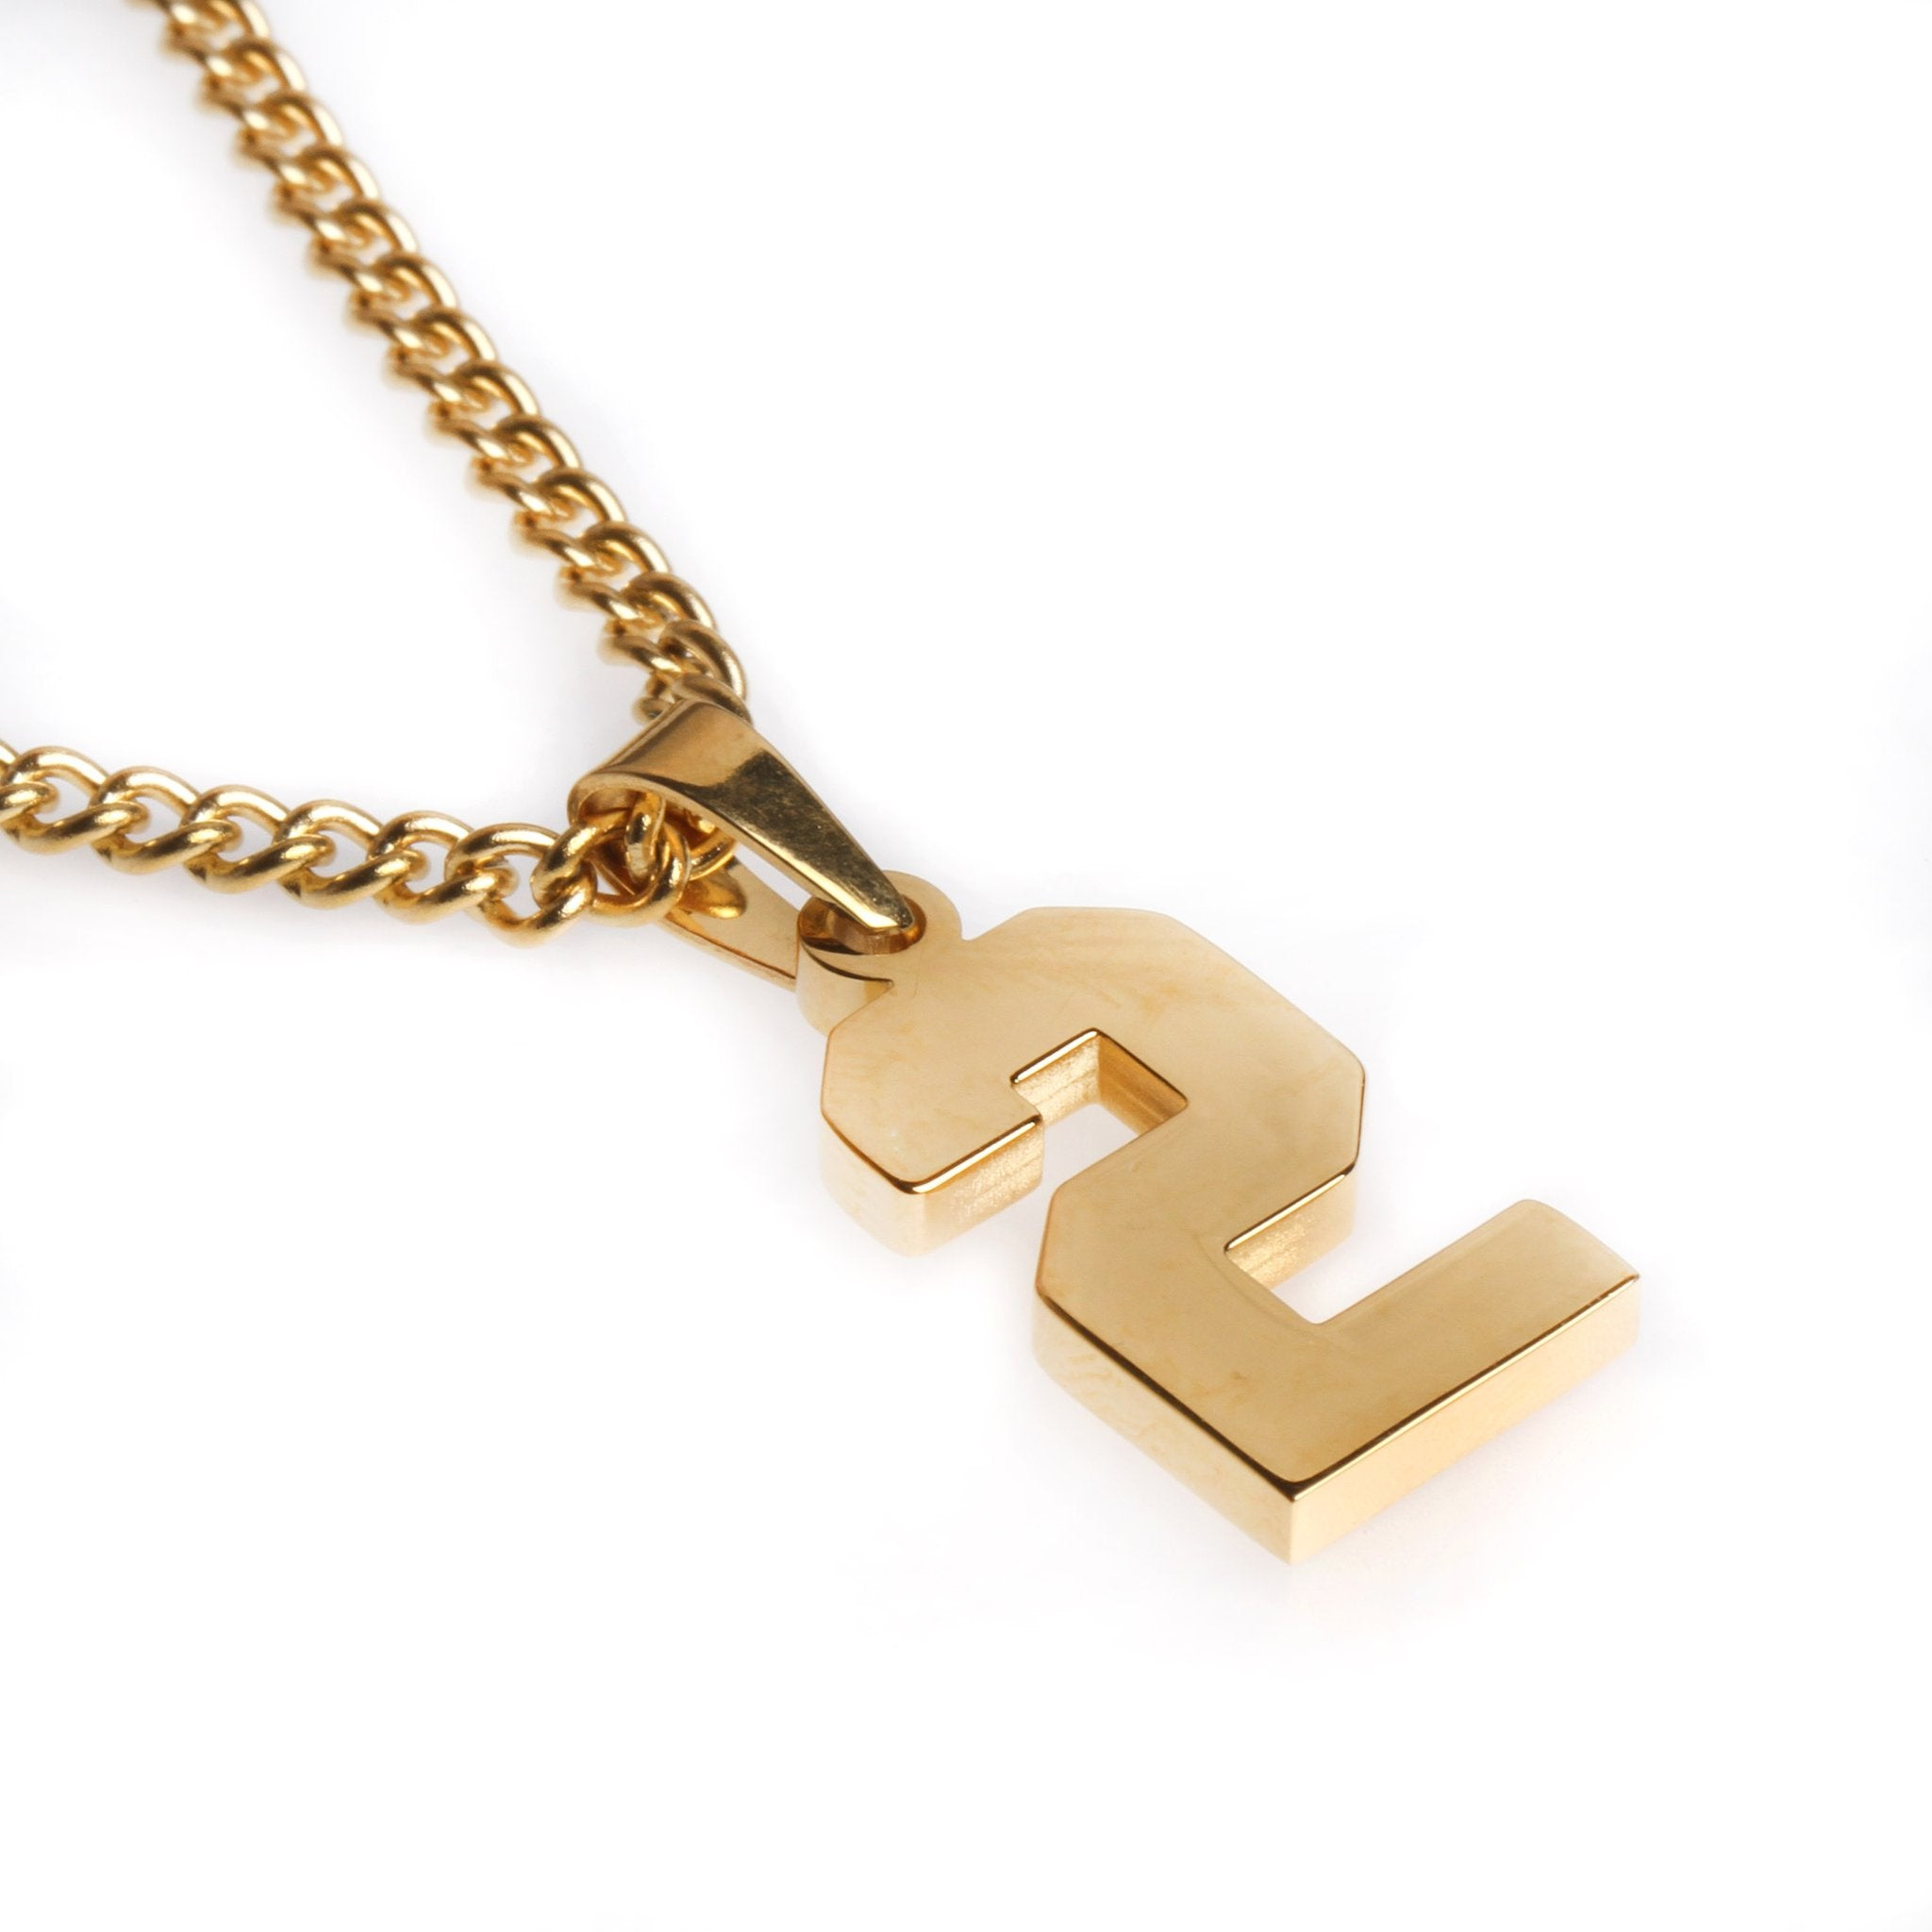 golden stainless polished jersey number pendant and chain filthy